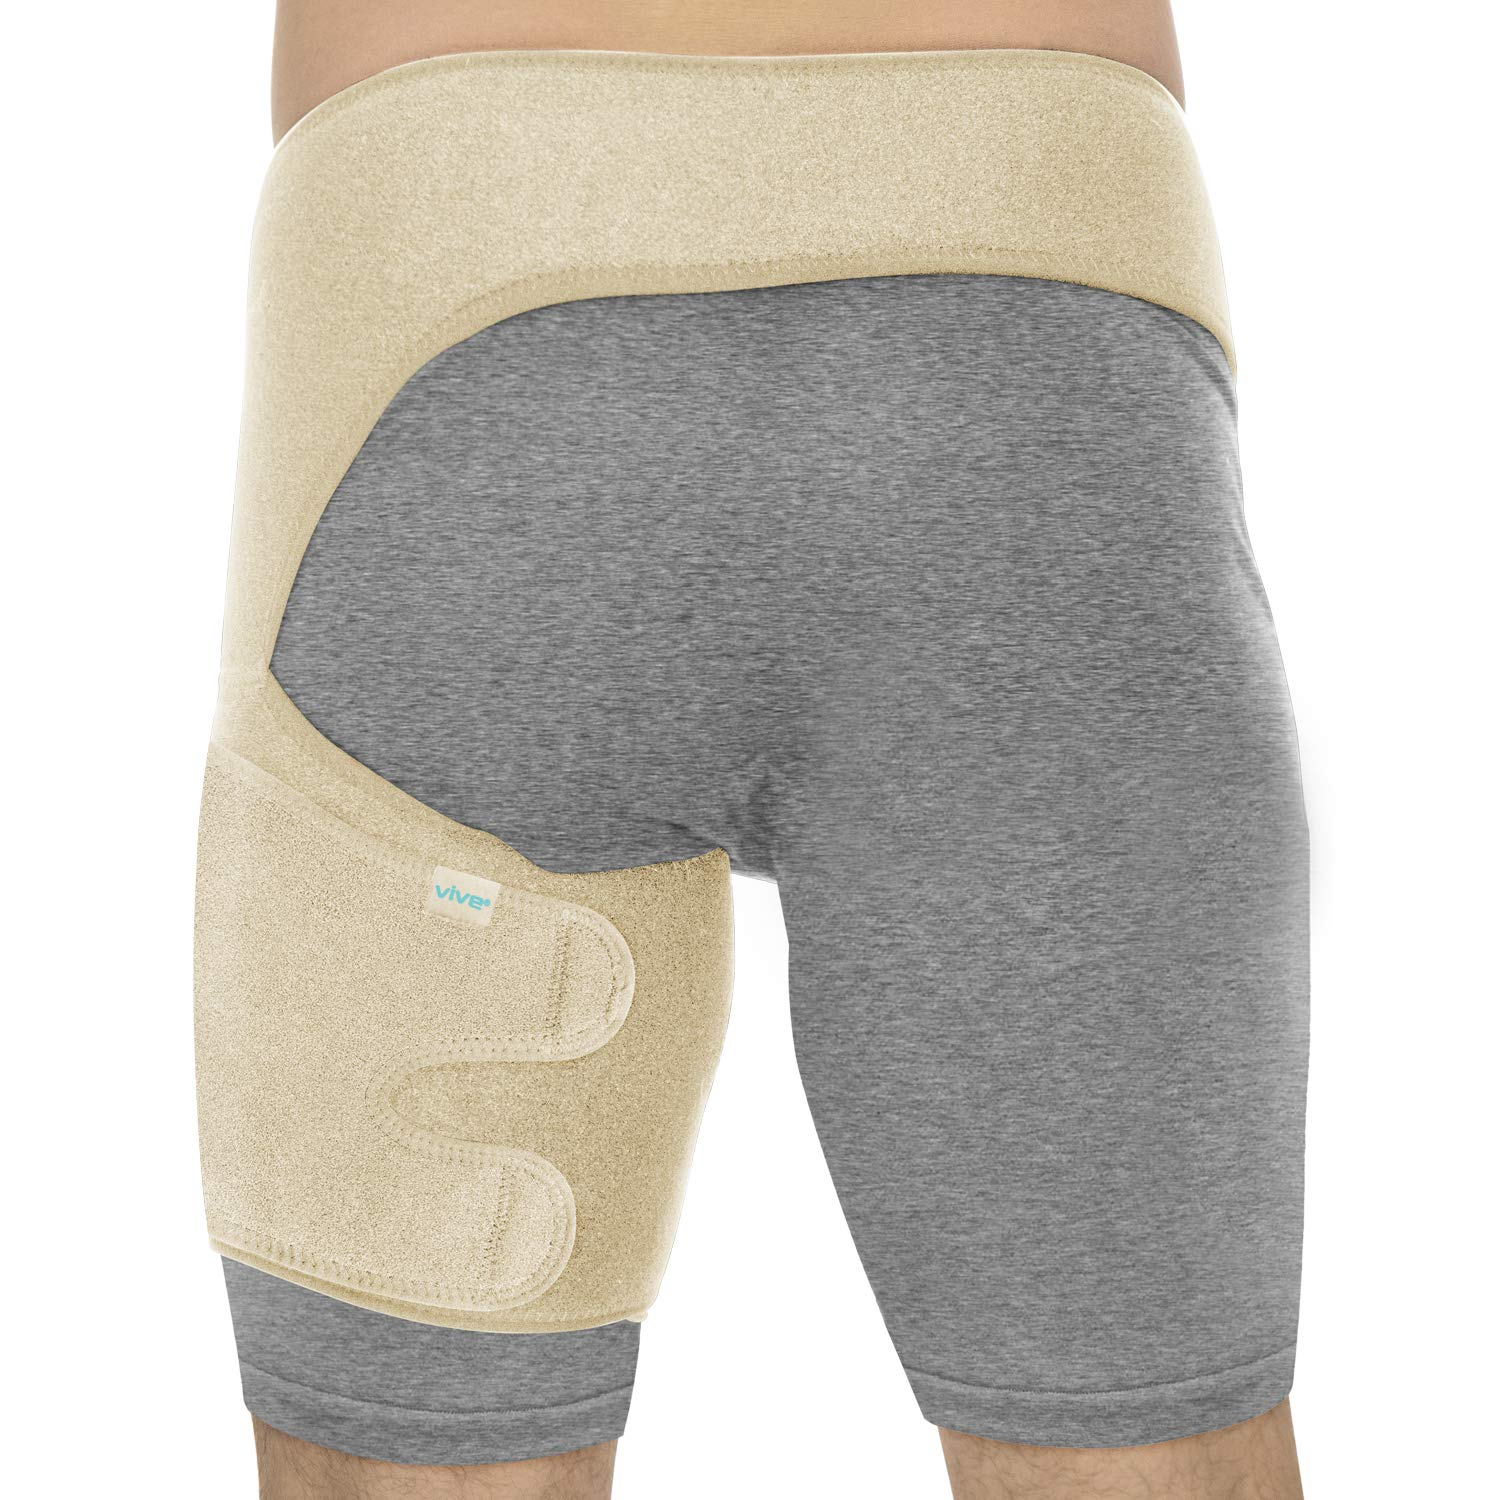 Vive Groin and Hip Brace - Sciatica Wrap for Men and Women - Compression Support for Nerve Pain Relief - Thigh, Hamstring Recovery for Joints, Flexor Strains, Pulled Muscles by Vive